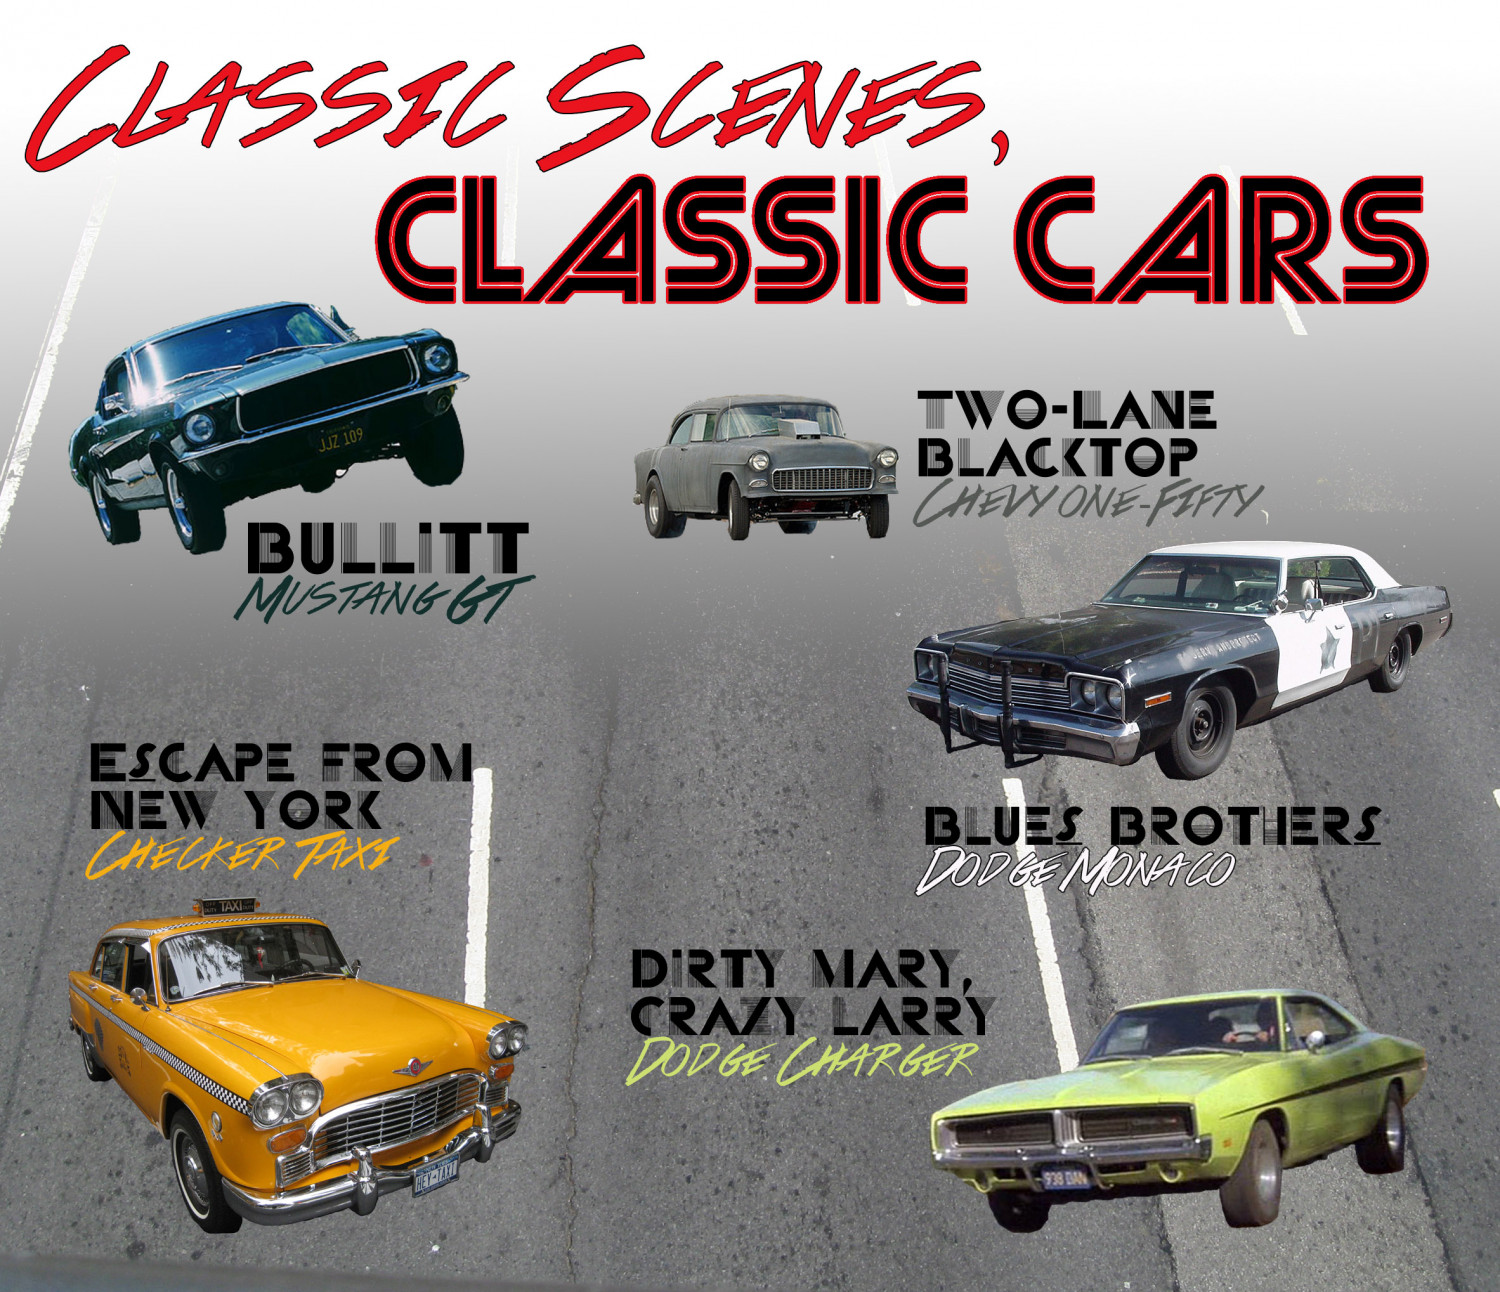 Classic cars from classic films Infographic